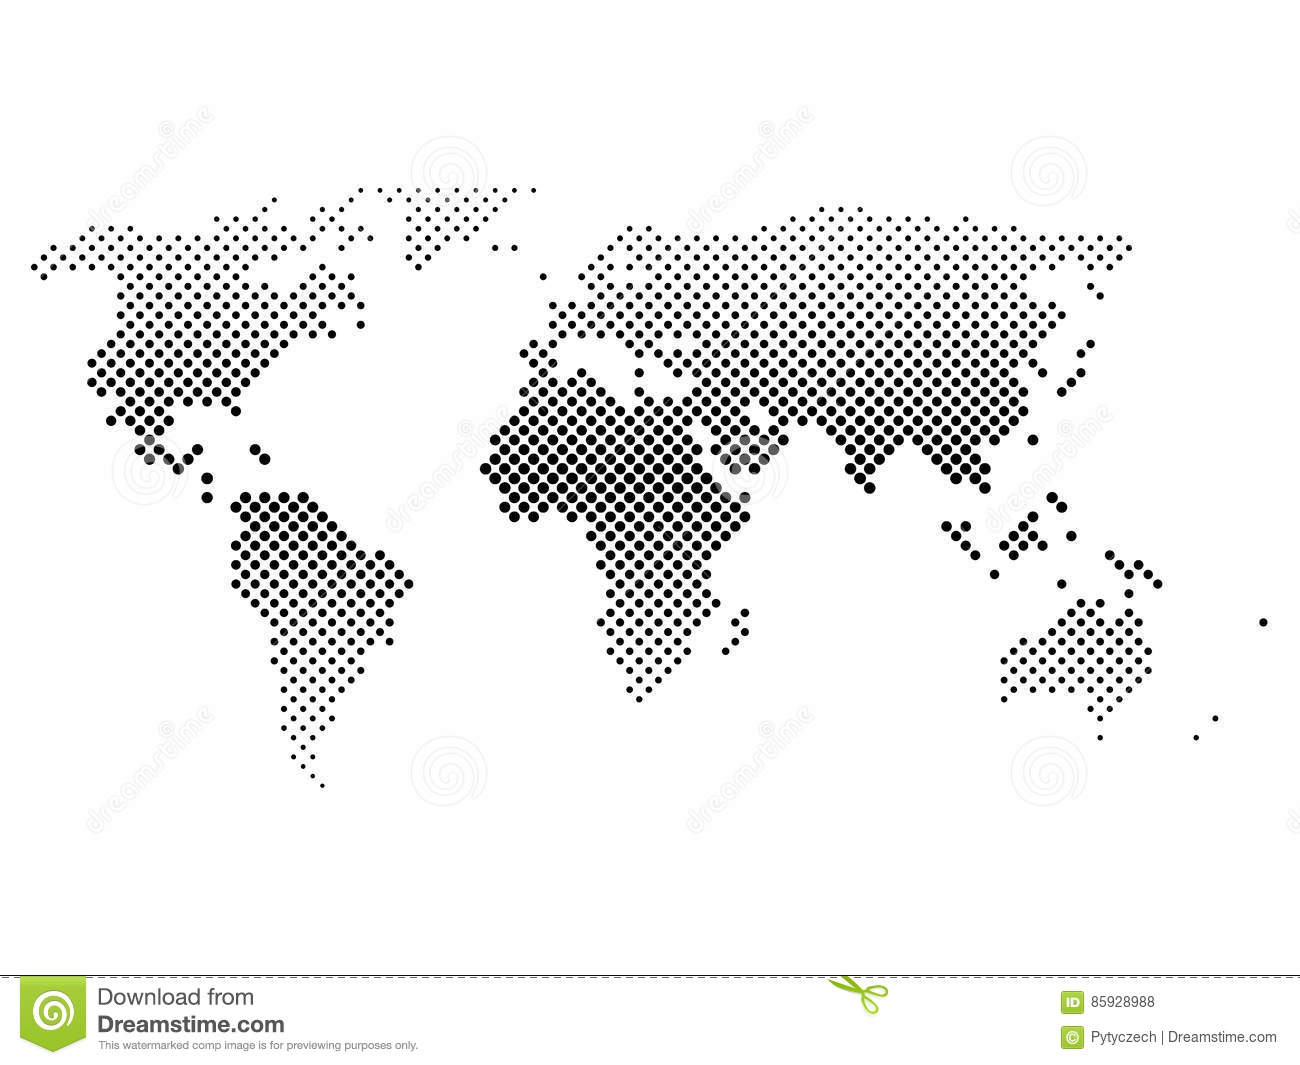 Black halftone world map of small dots in diagonal arrangement download black halftone world map of small dots in diagonal arrangement bilinear horizontal gradient gumiabroncs Choice Image